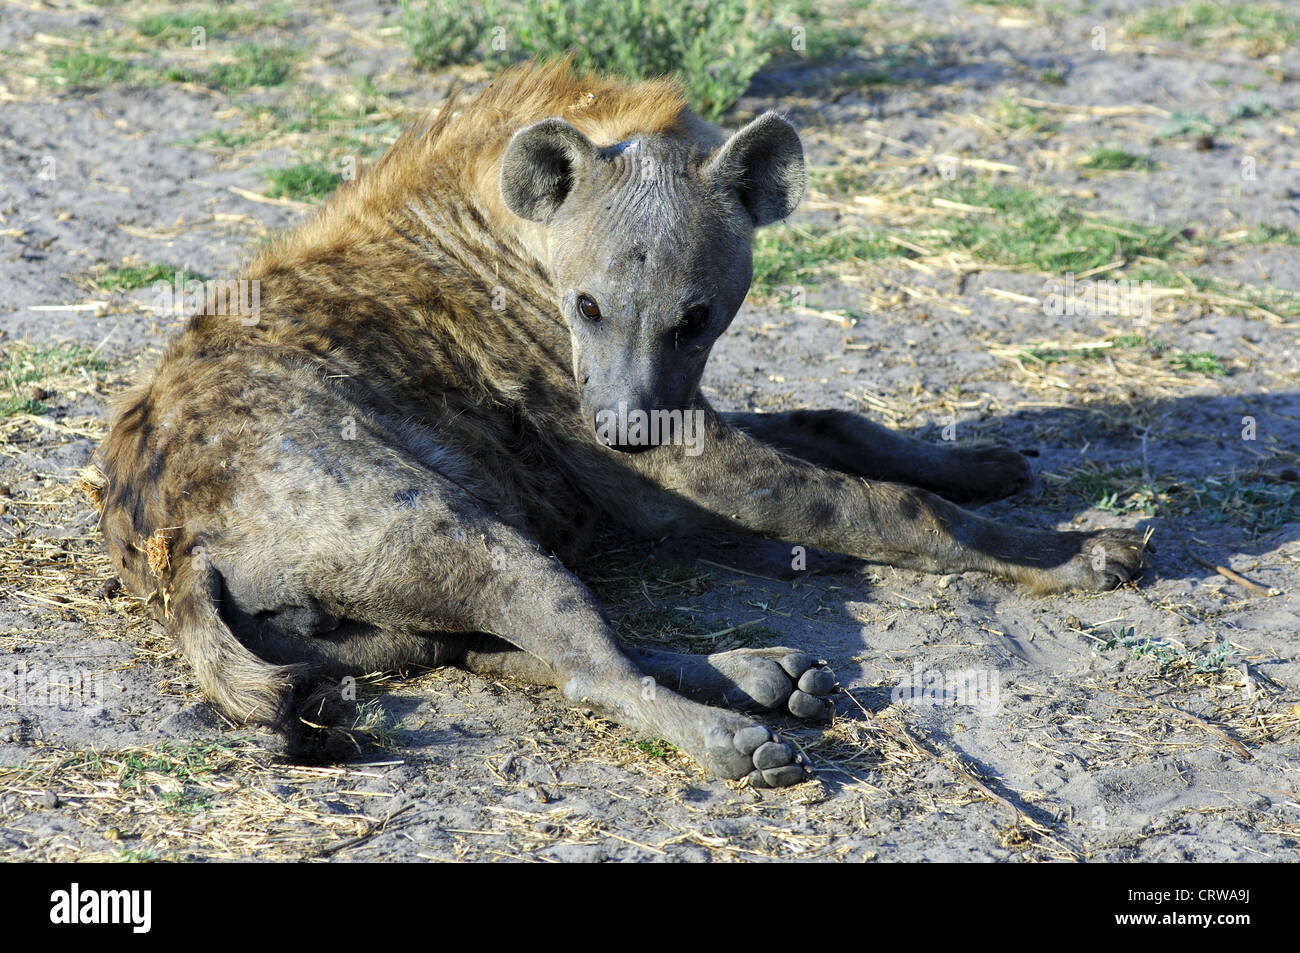 Spotted Hyena - Stock Image